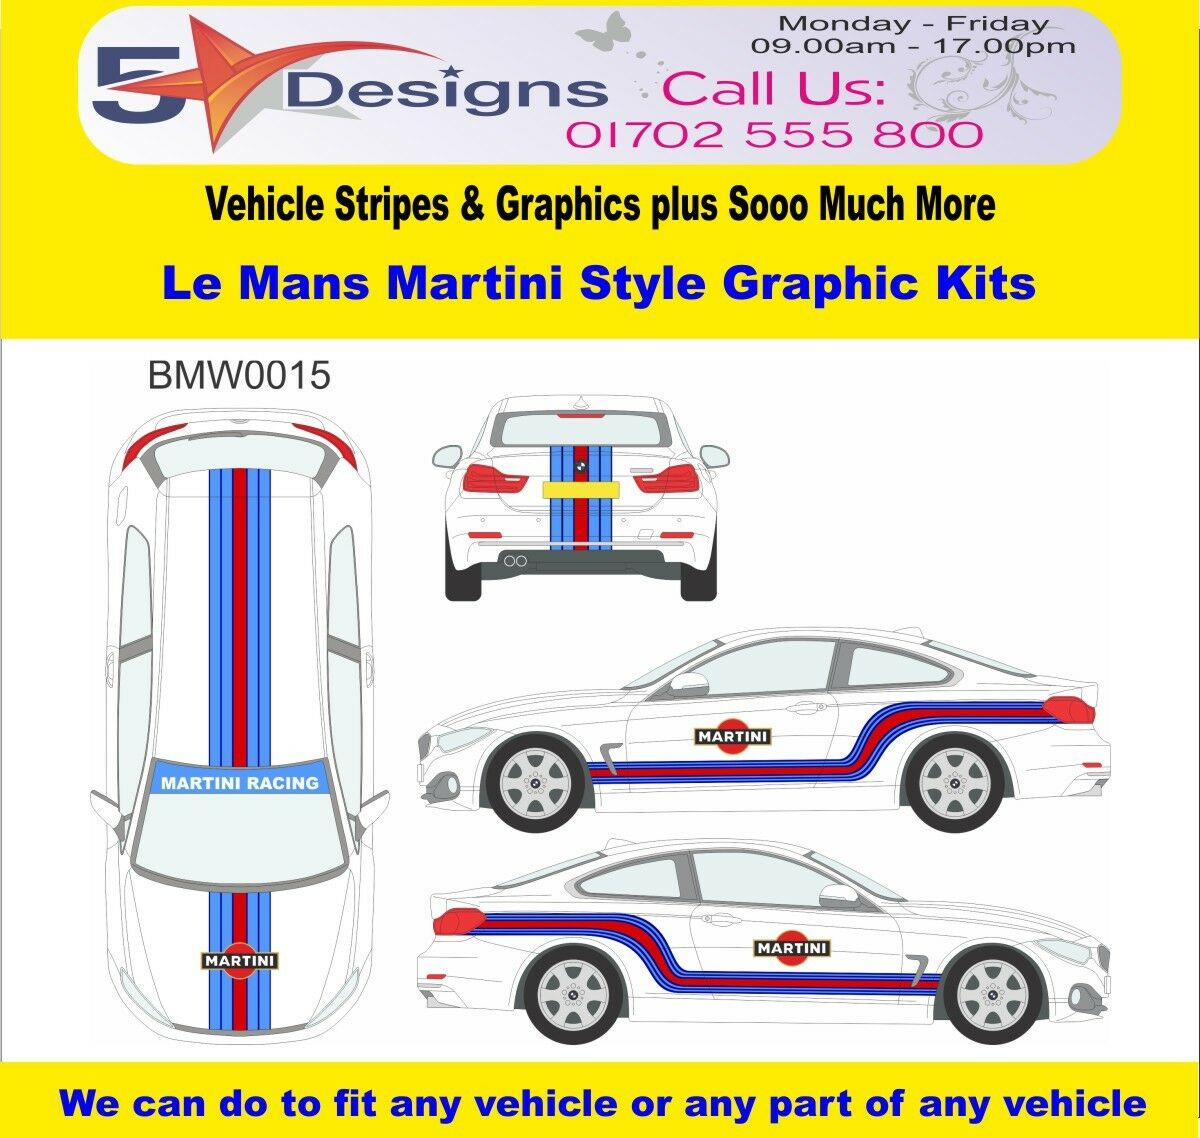 BMW 4 Series Coupe Le Mans Martini Race Rally Logo Graphics Kit 15